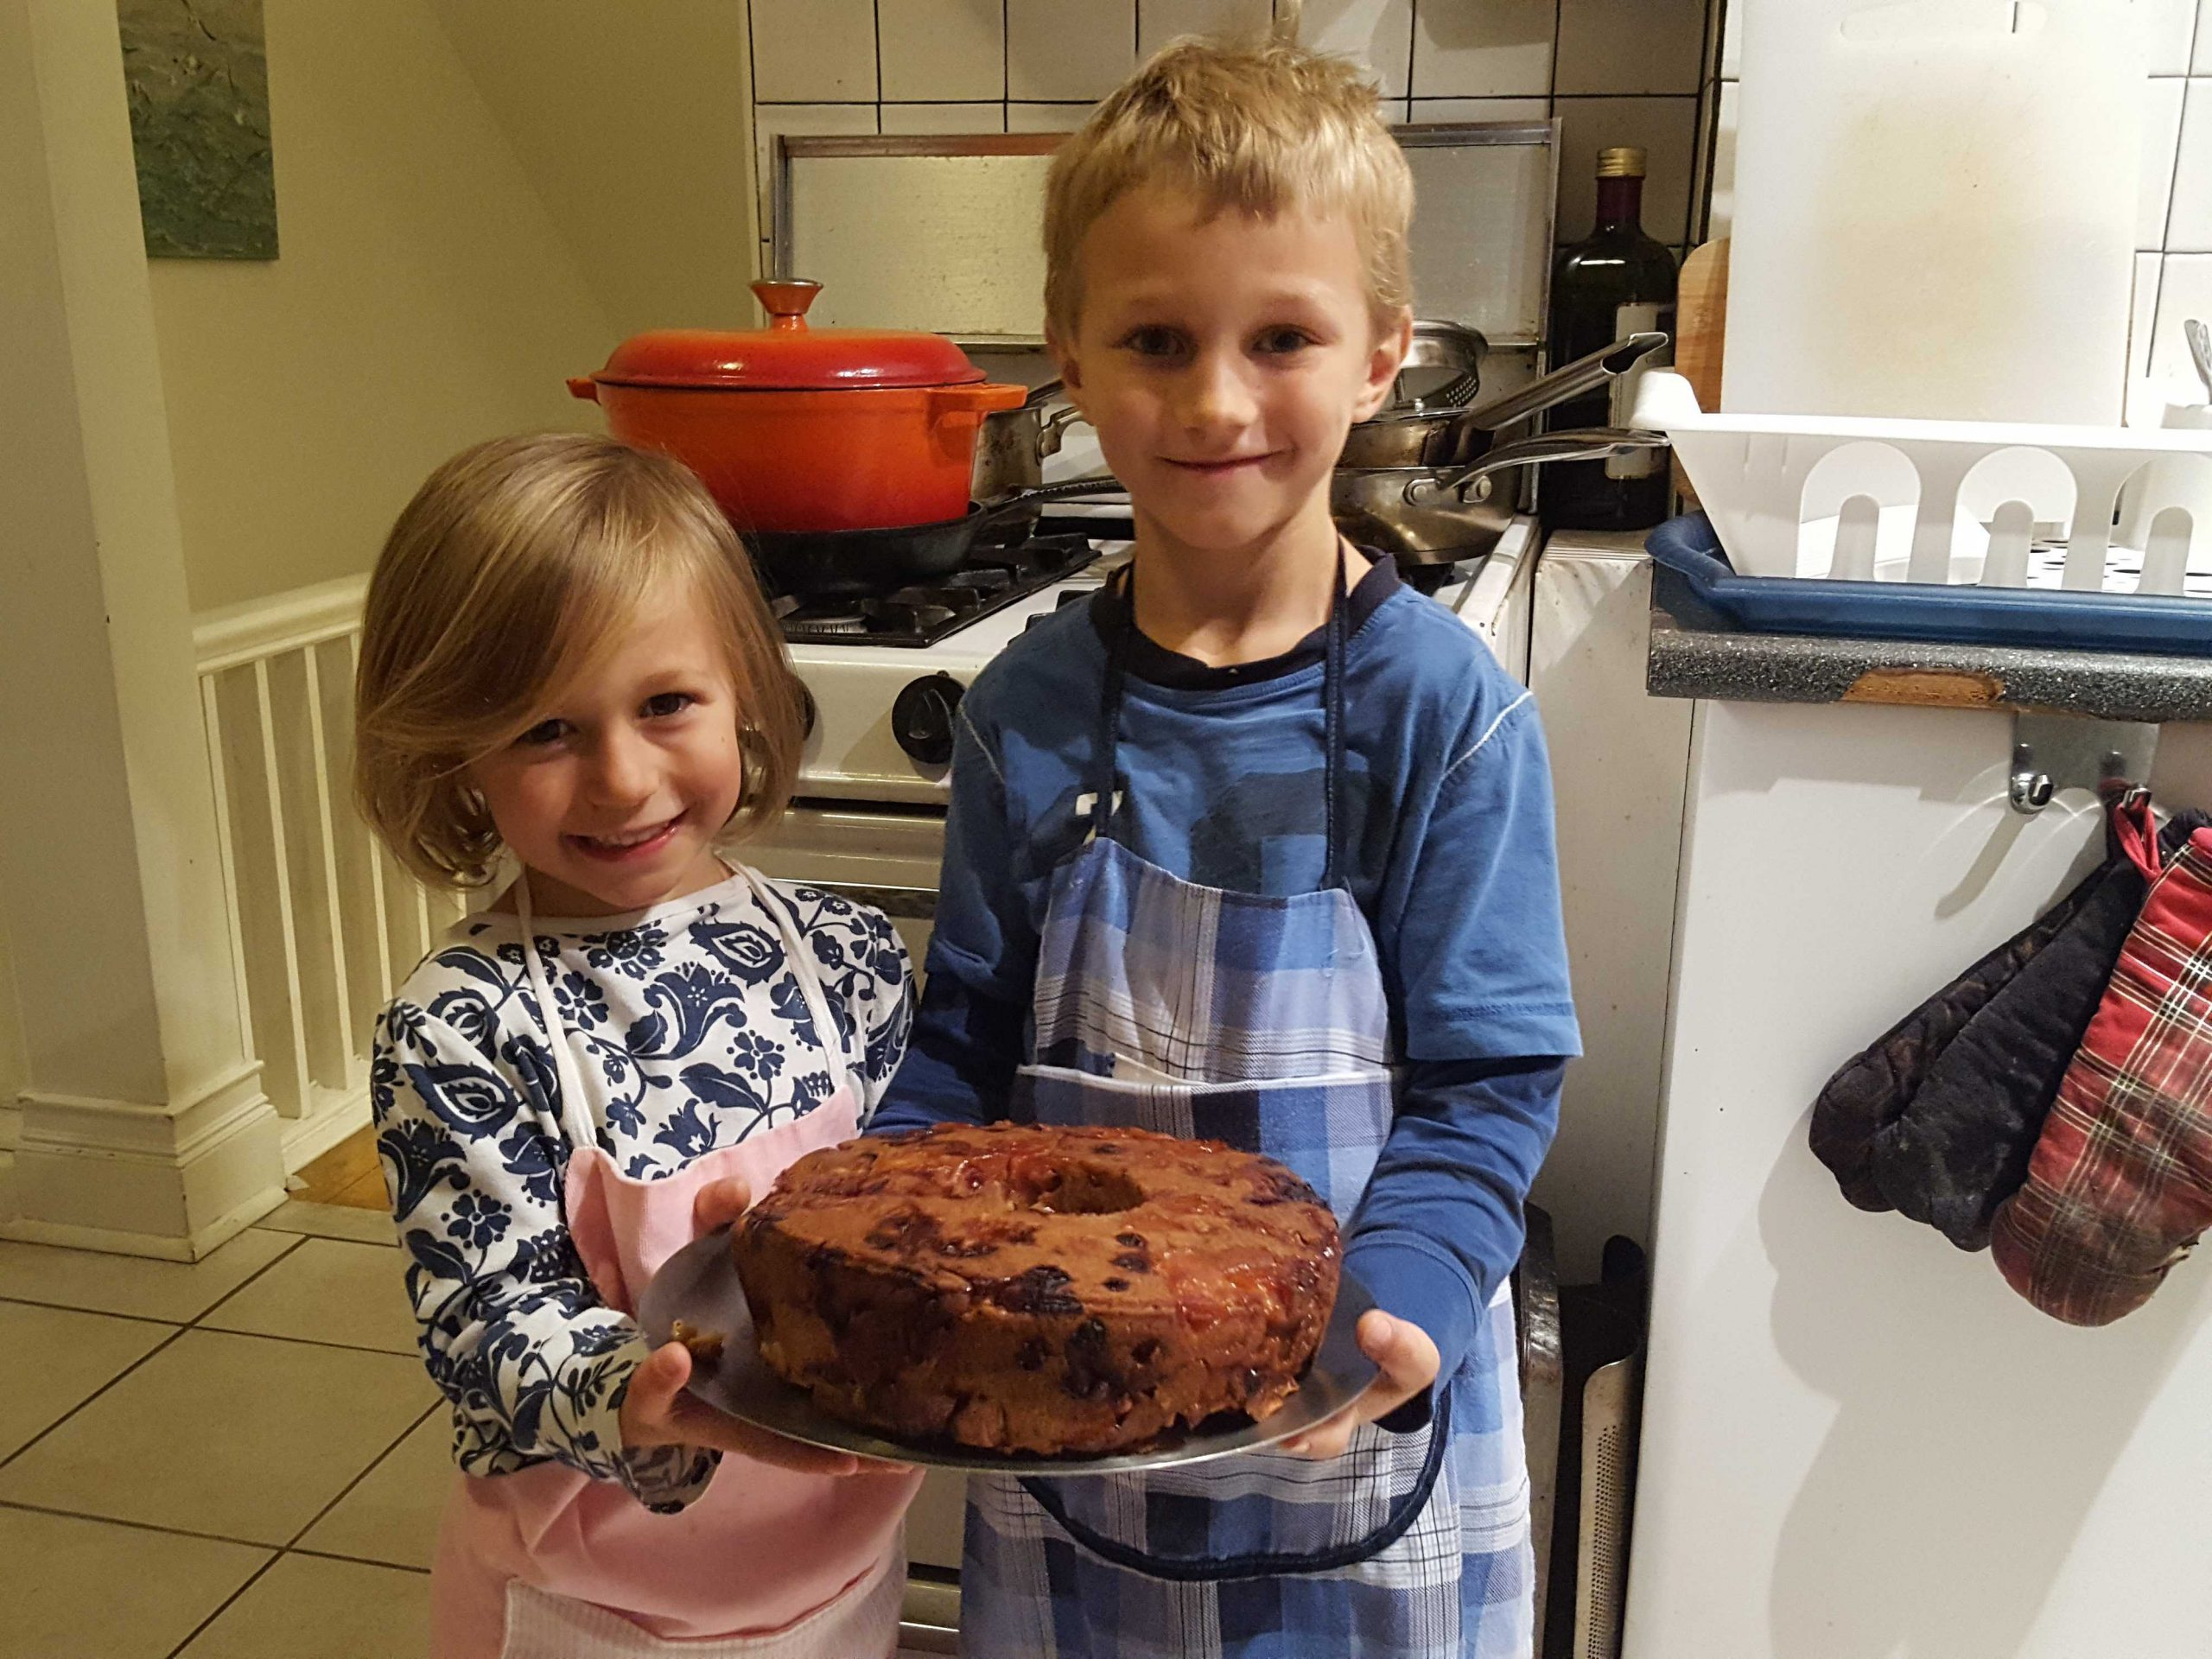 Kids holding a baked cake